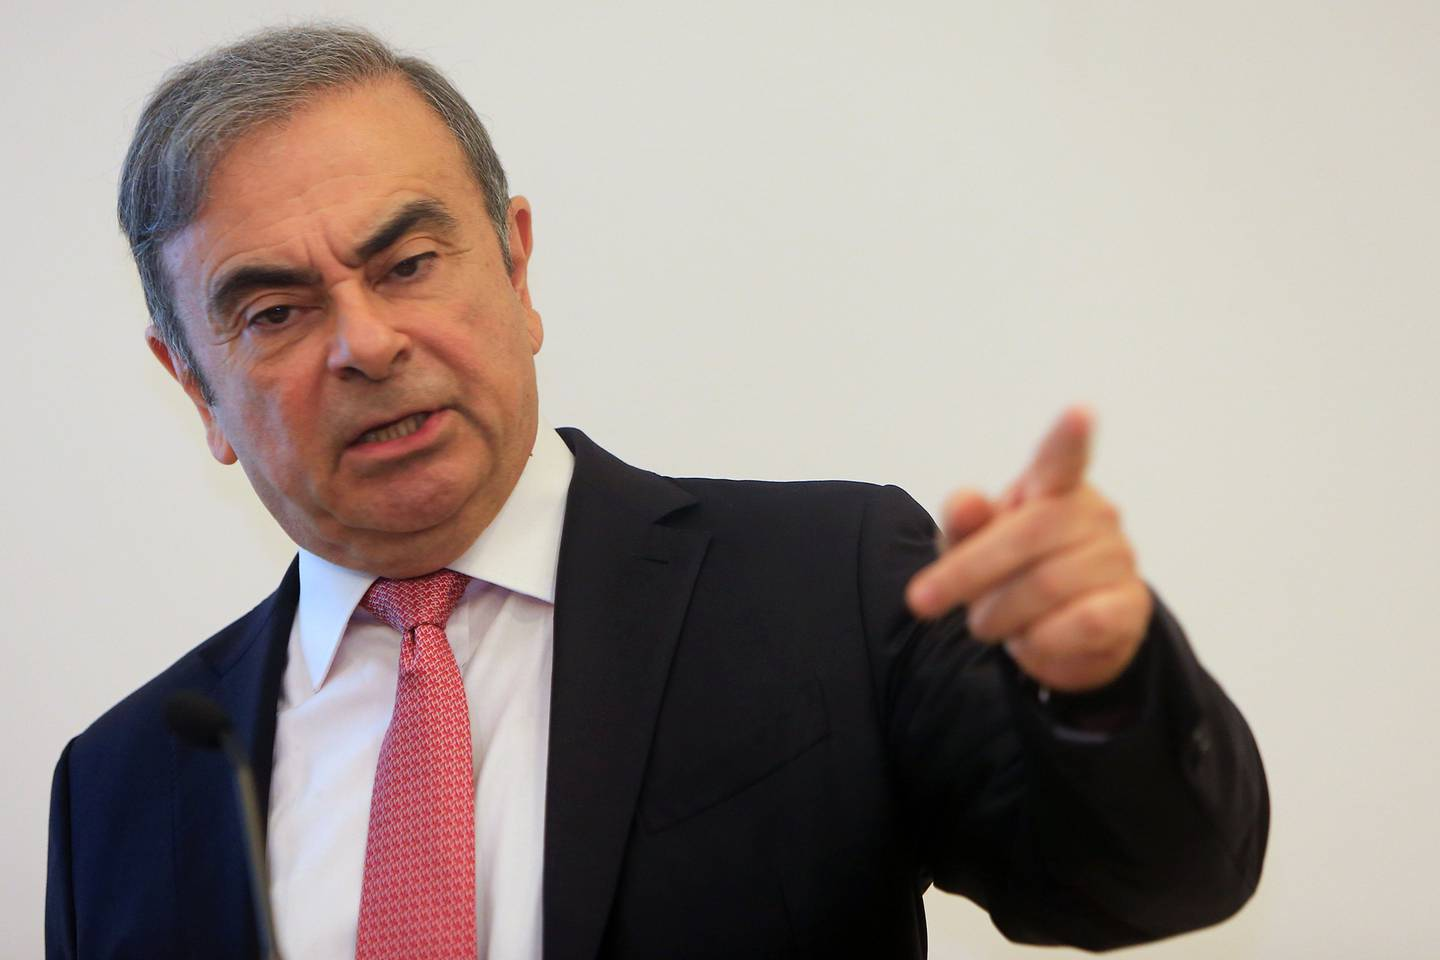 Former Renault-Nissan boss Carlos Ghosn addresses a large crowd of journalists on his reasons for dodging trial in Japan, where he is accused of financial misconduct, at the Lebanese Press Syndicate in Beirut on January 8, 2020.